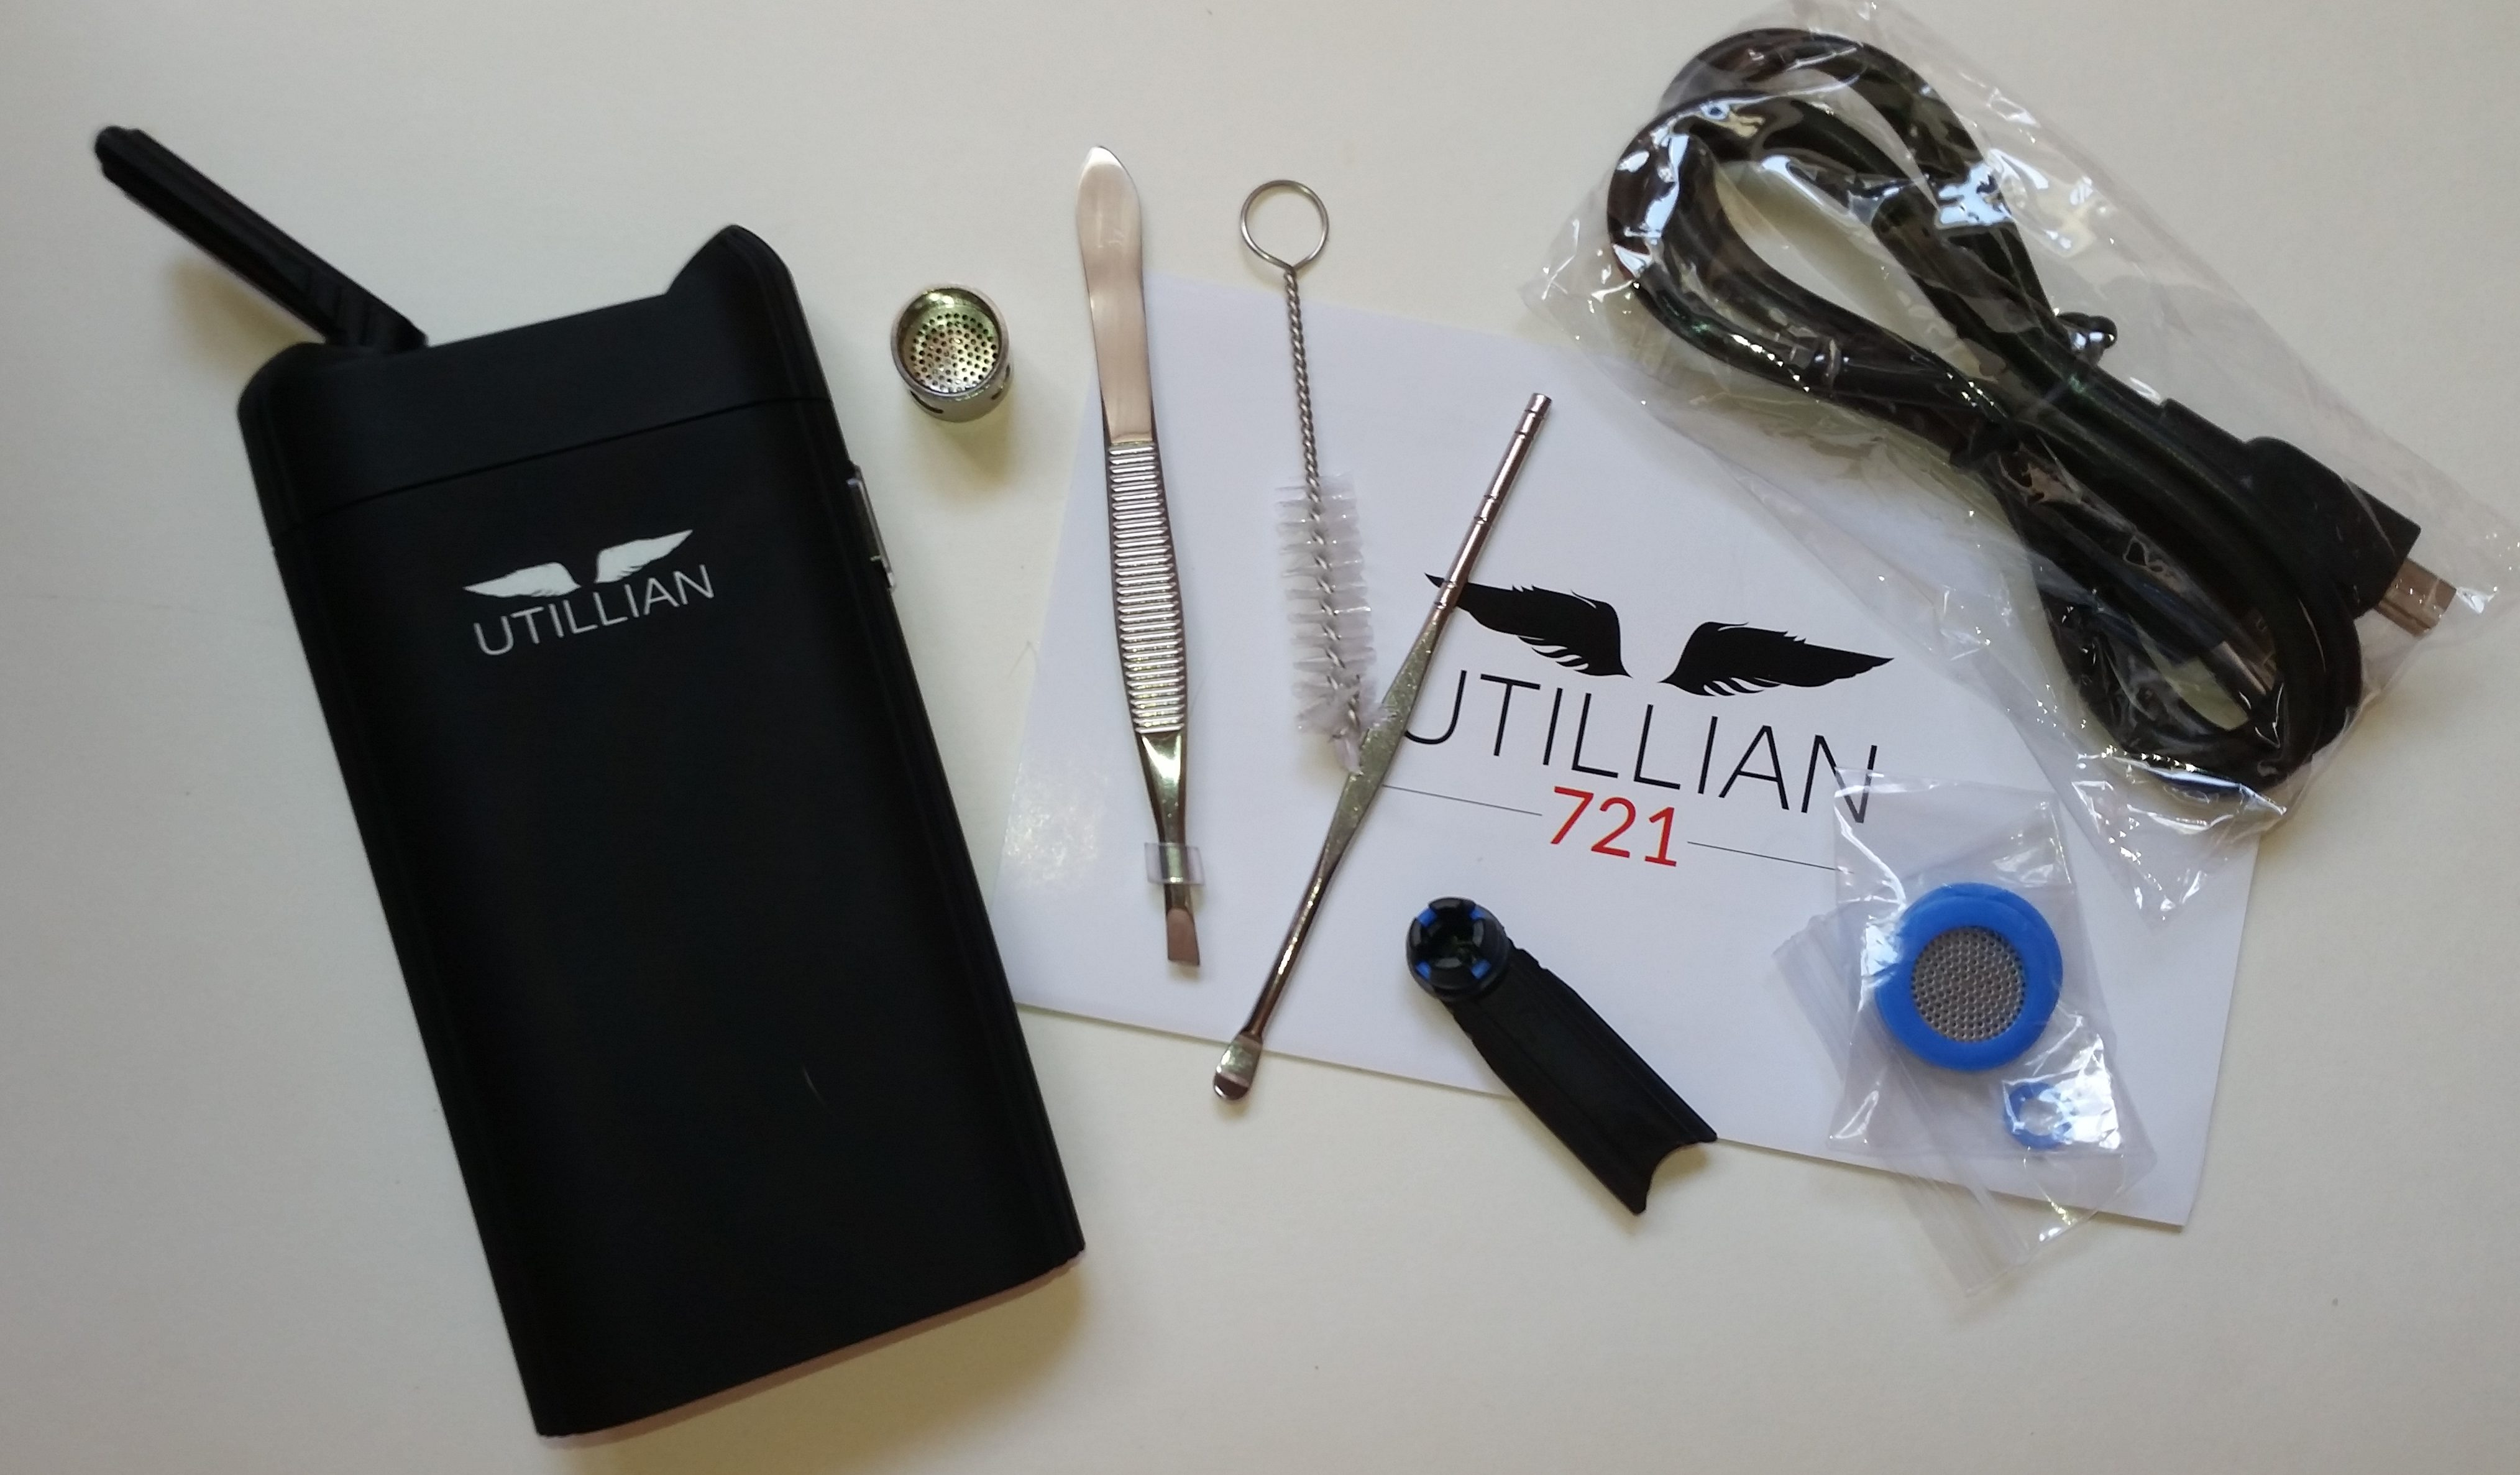 Best Portable Marijuana Vaporizers: Found, Tested and Reviewed. -The Utillian 721 Review